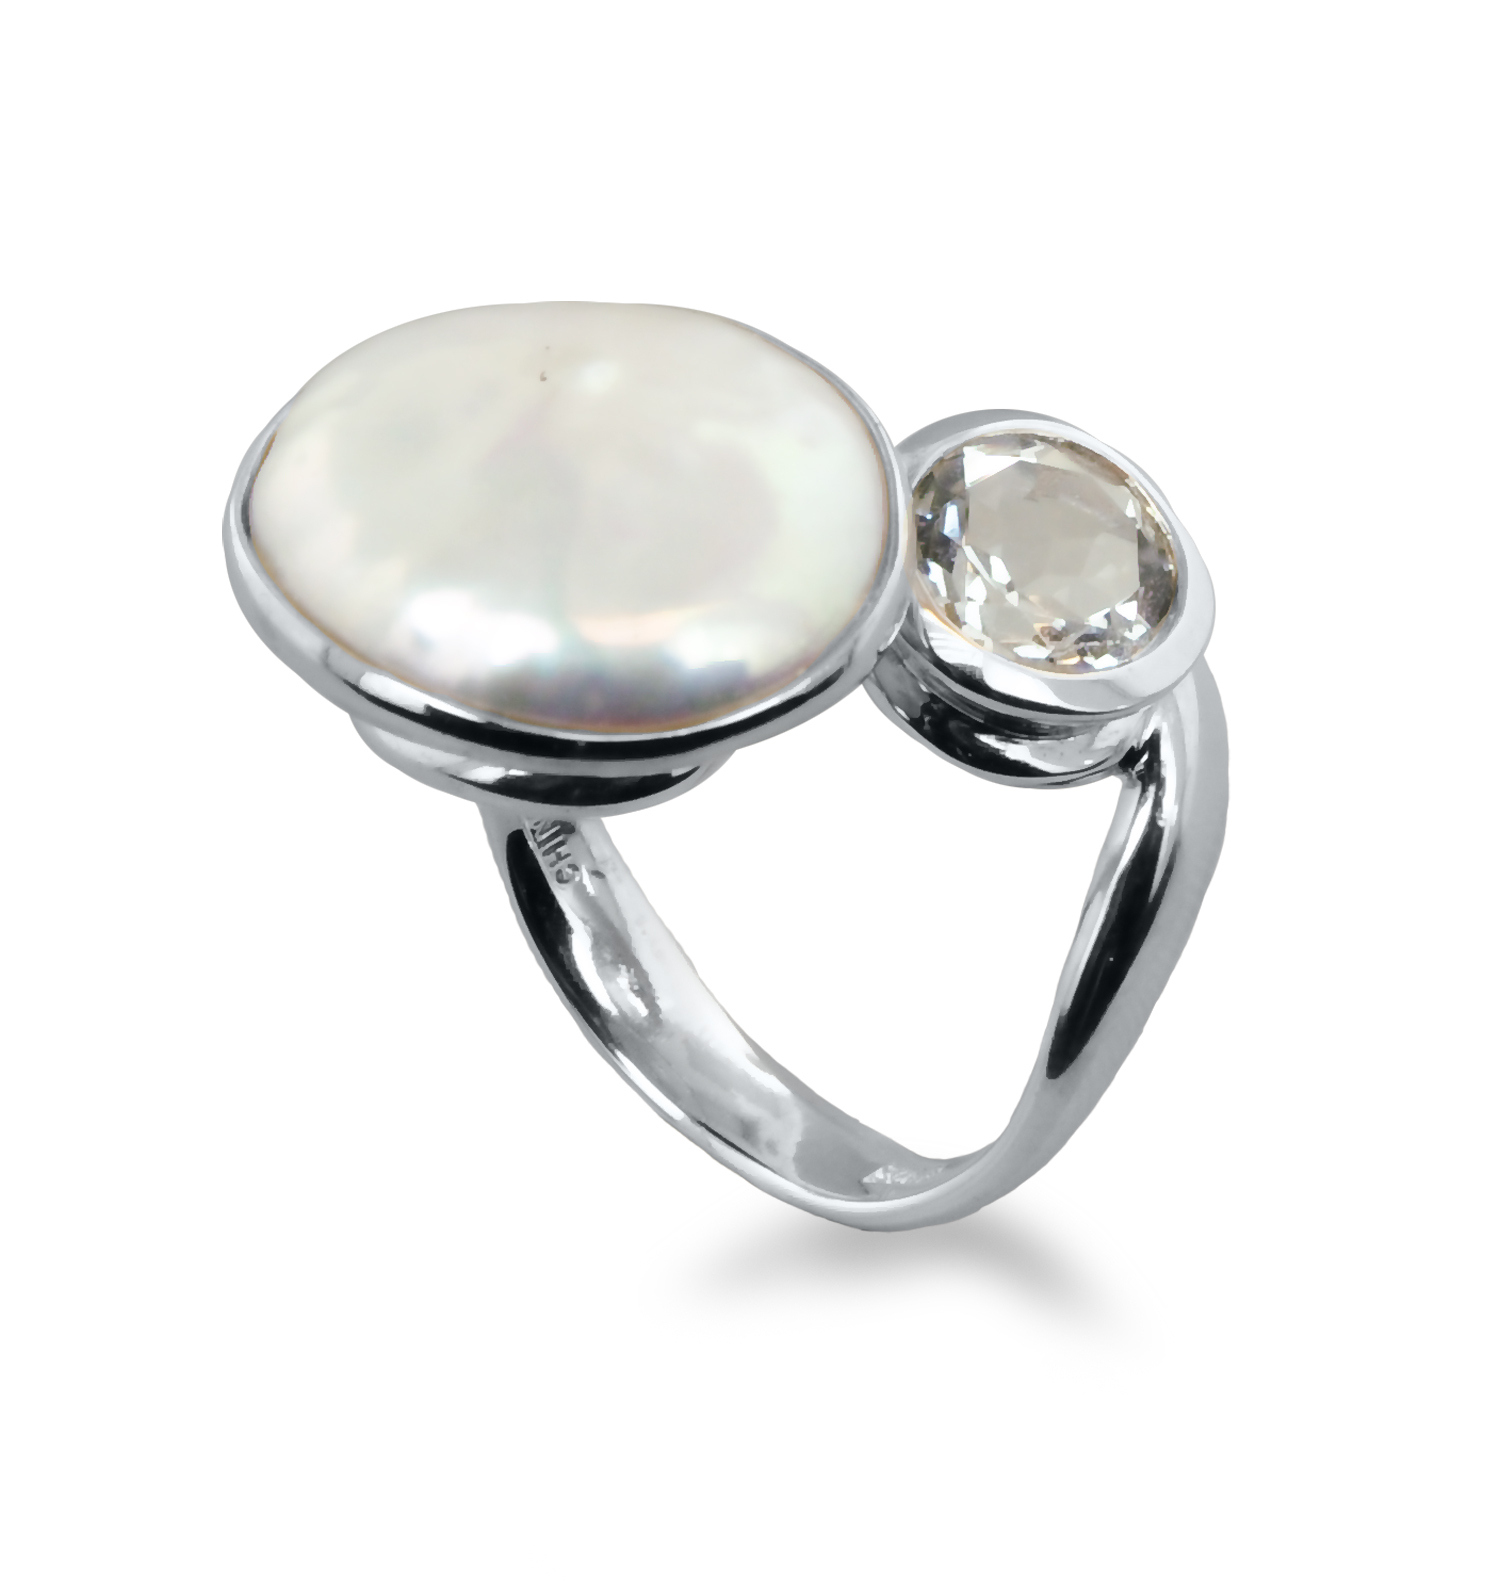 Sterling Silver 15-16mm White Baroque Coin Freshwater Cultured Pearl with White Topaz Ring